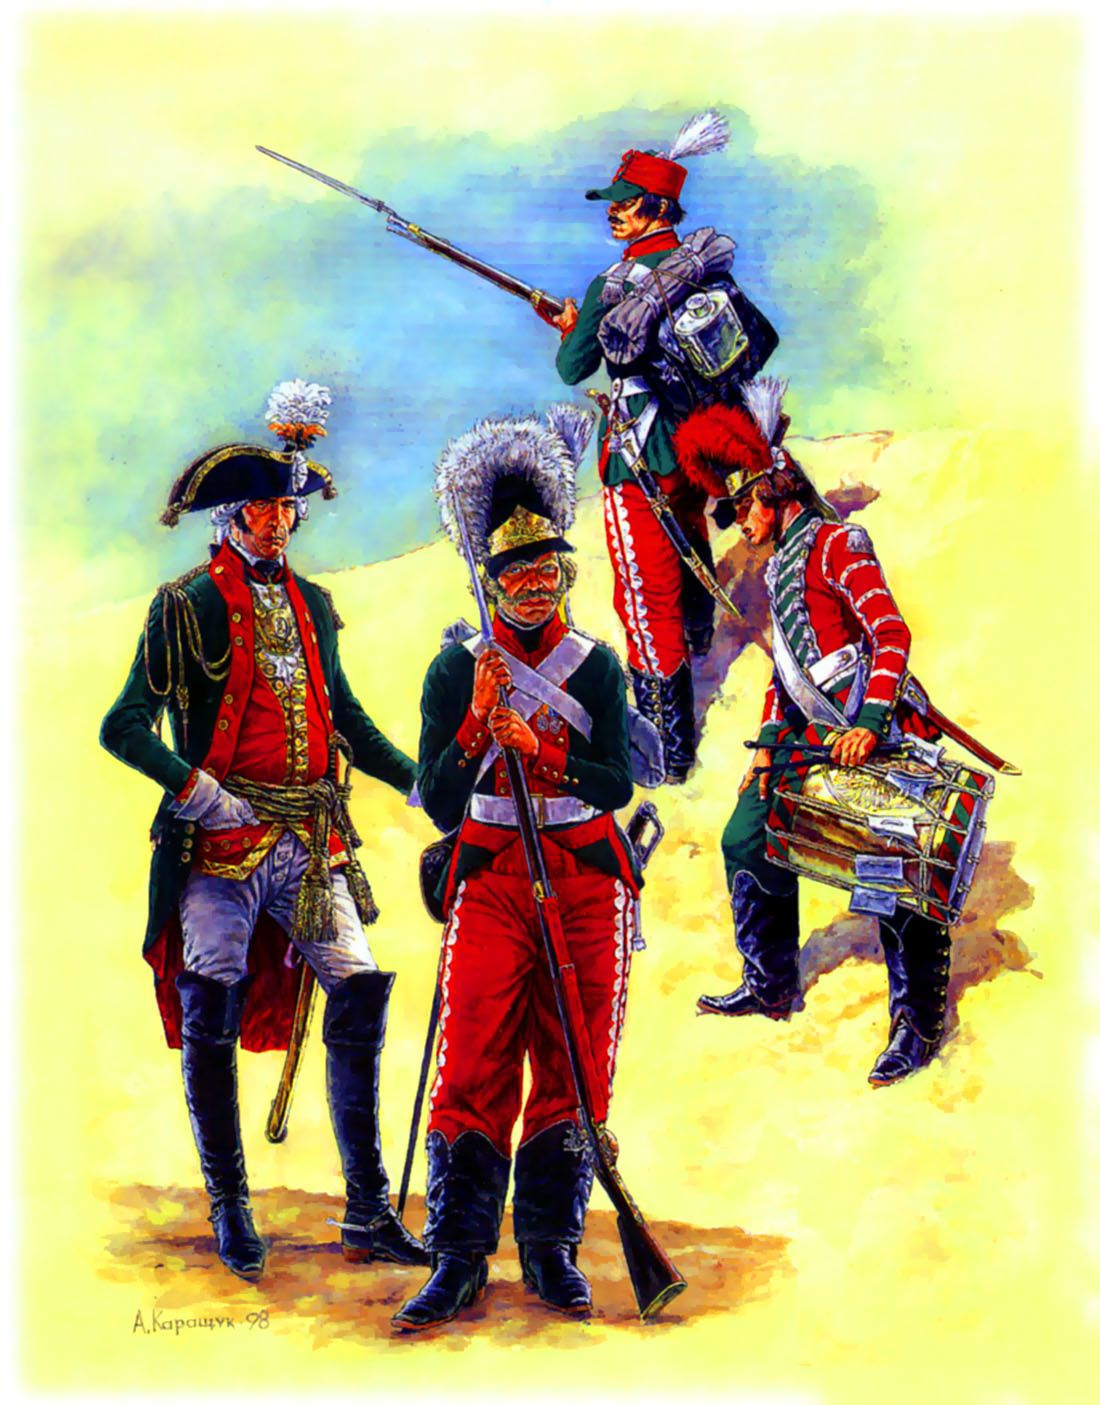 an analysis of the french during seven years war - the seven years war, or sometimes referred to as the french and indian war, took place in the year 1754 and finally came to a conclusion in 1763, just prior to the american revolution the french and indian war is often a war that's importance is overlooked throughout the history of america.